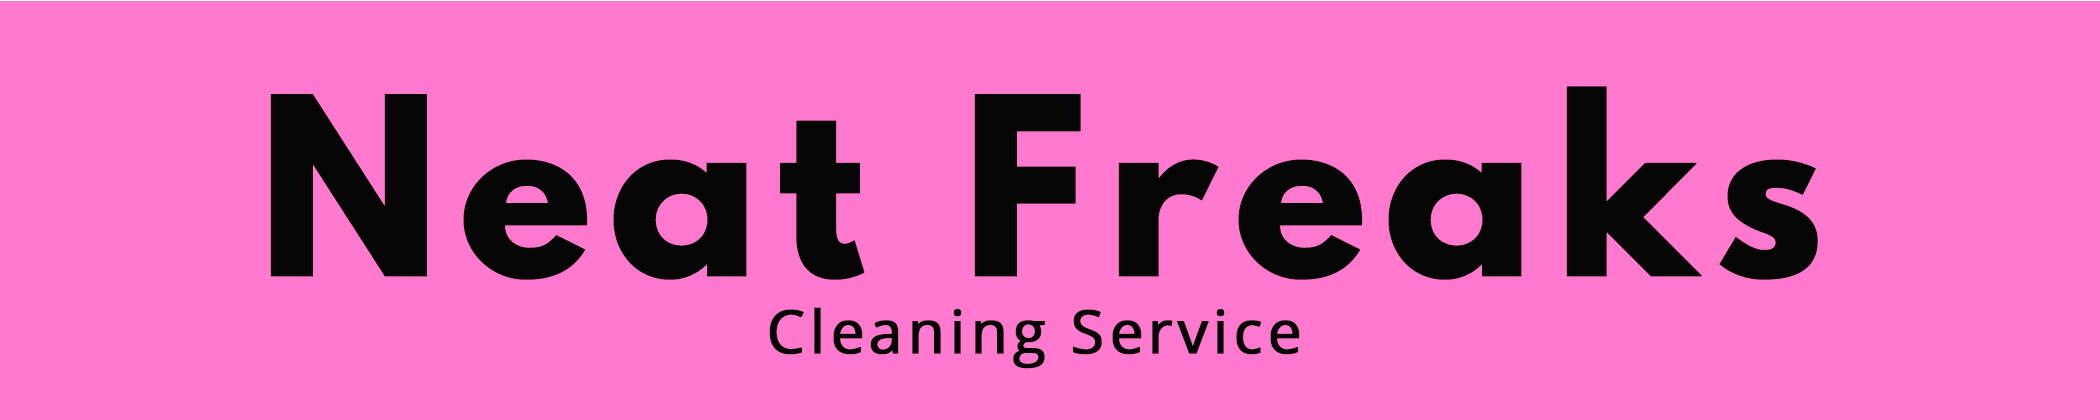 neat freaks cleaning services